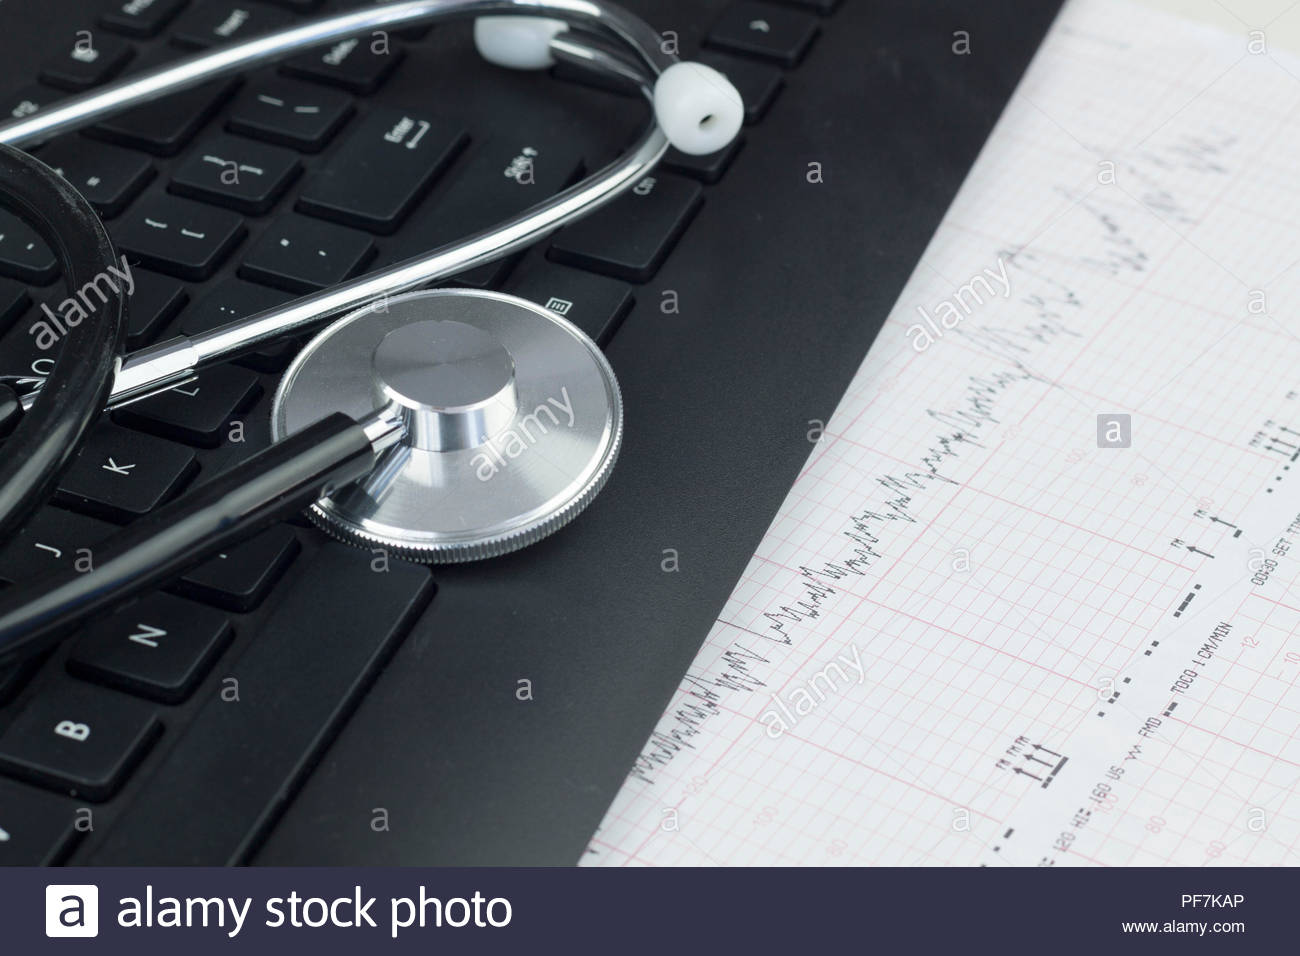 Stethoscope on the keyboard illustrating the medical industry / Medical information concept Stock Photo